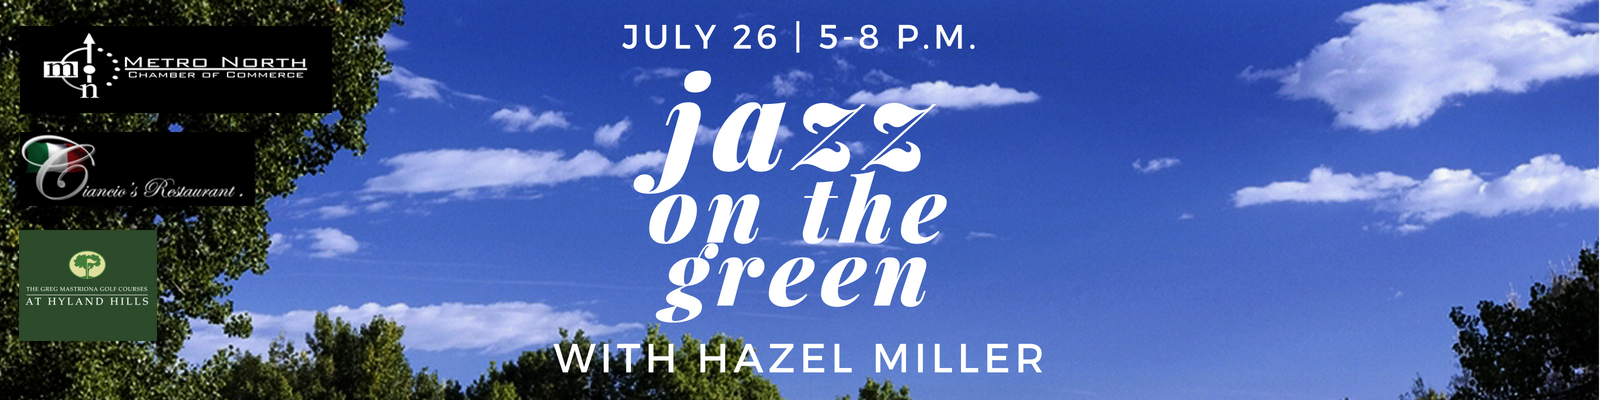 Jazz-on-the-Green-2018-web-banner.png